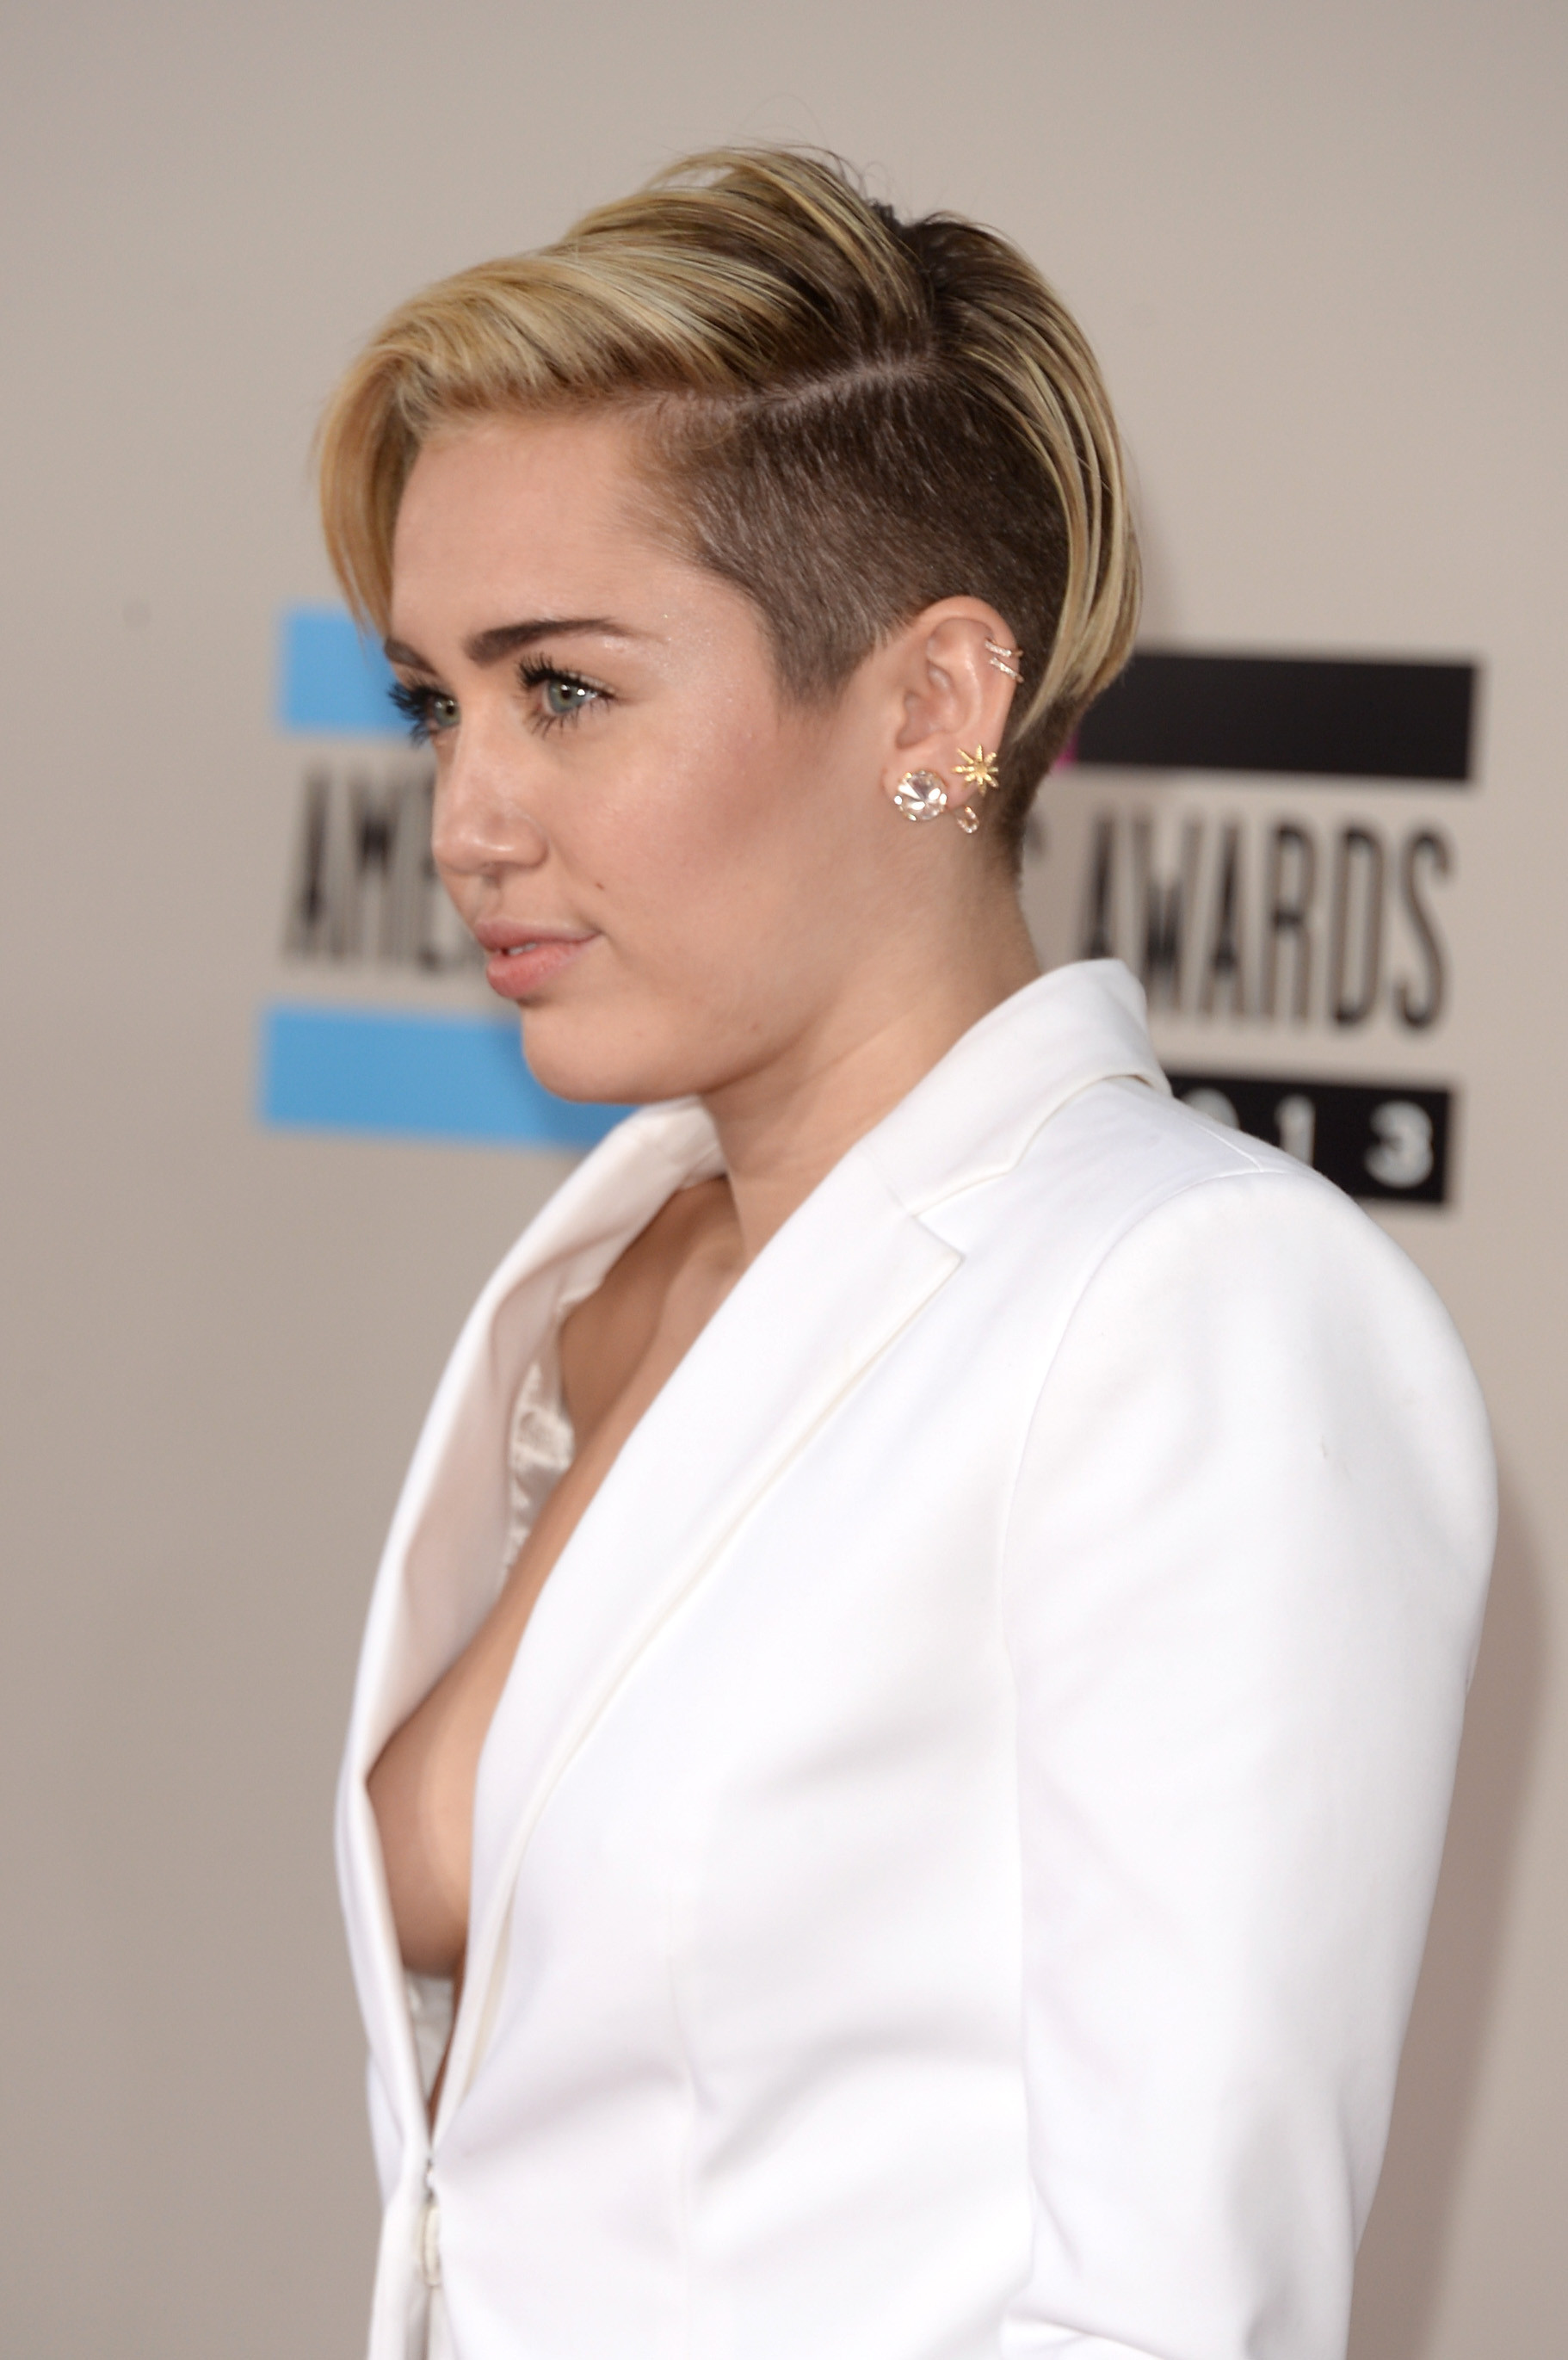 Miley's professional Sideboob